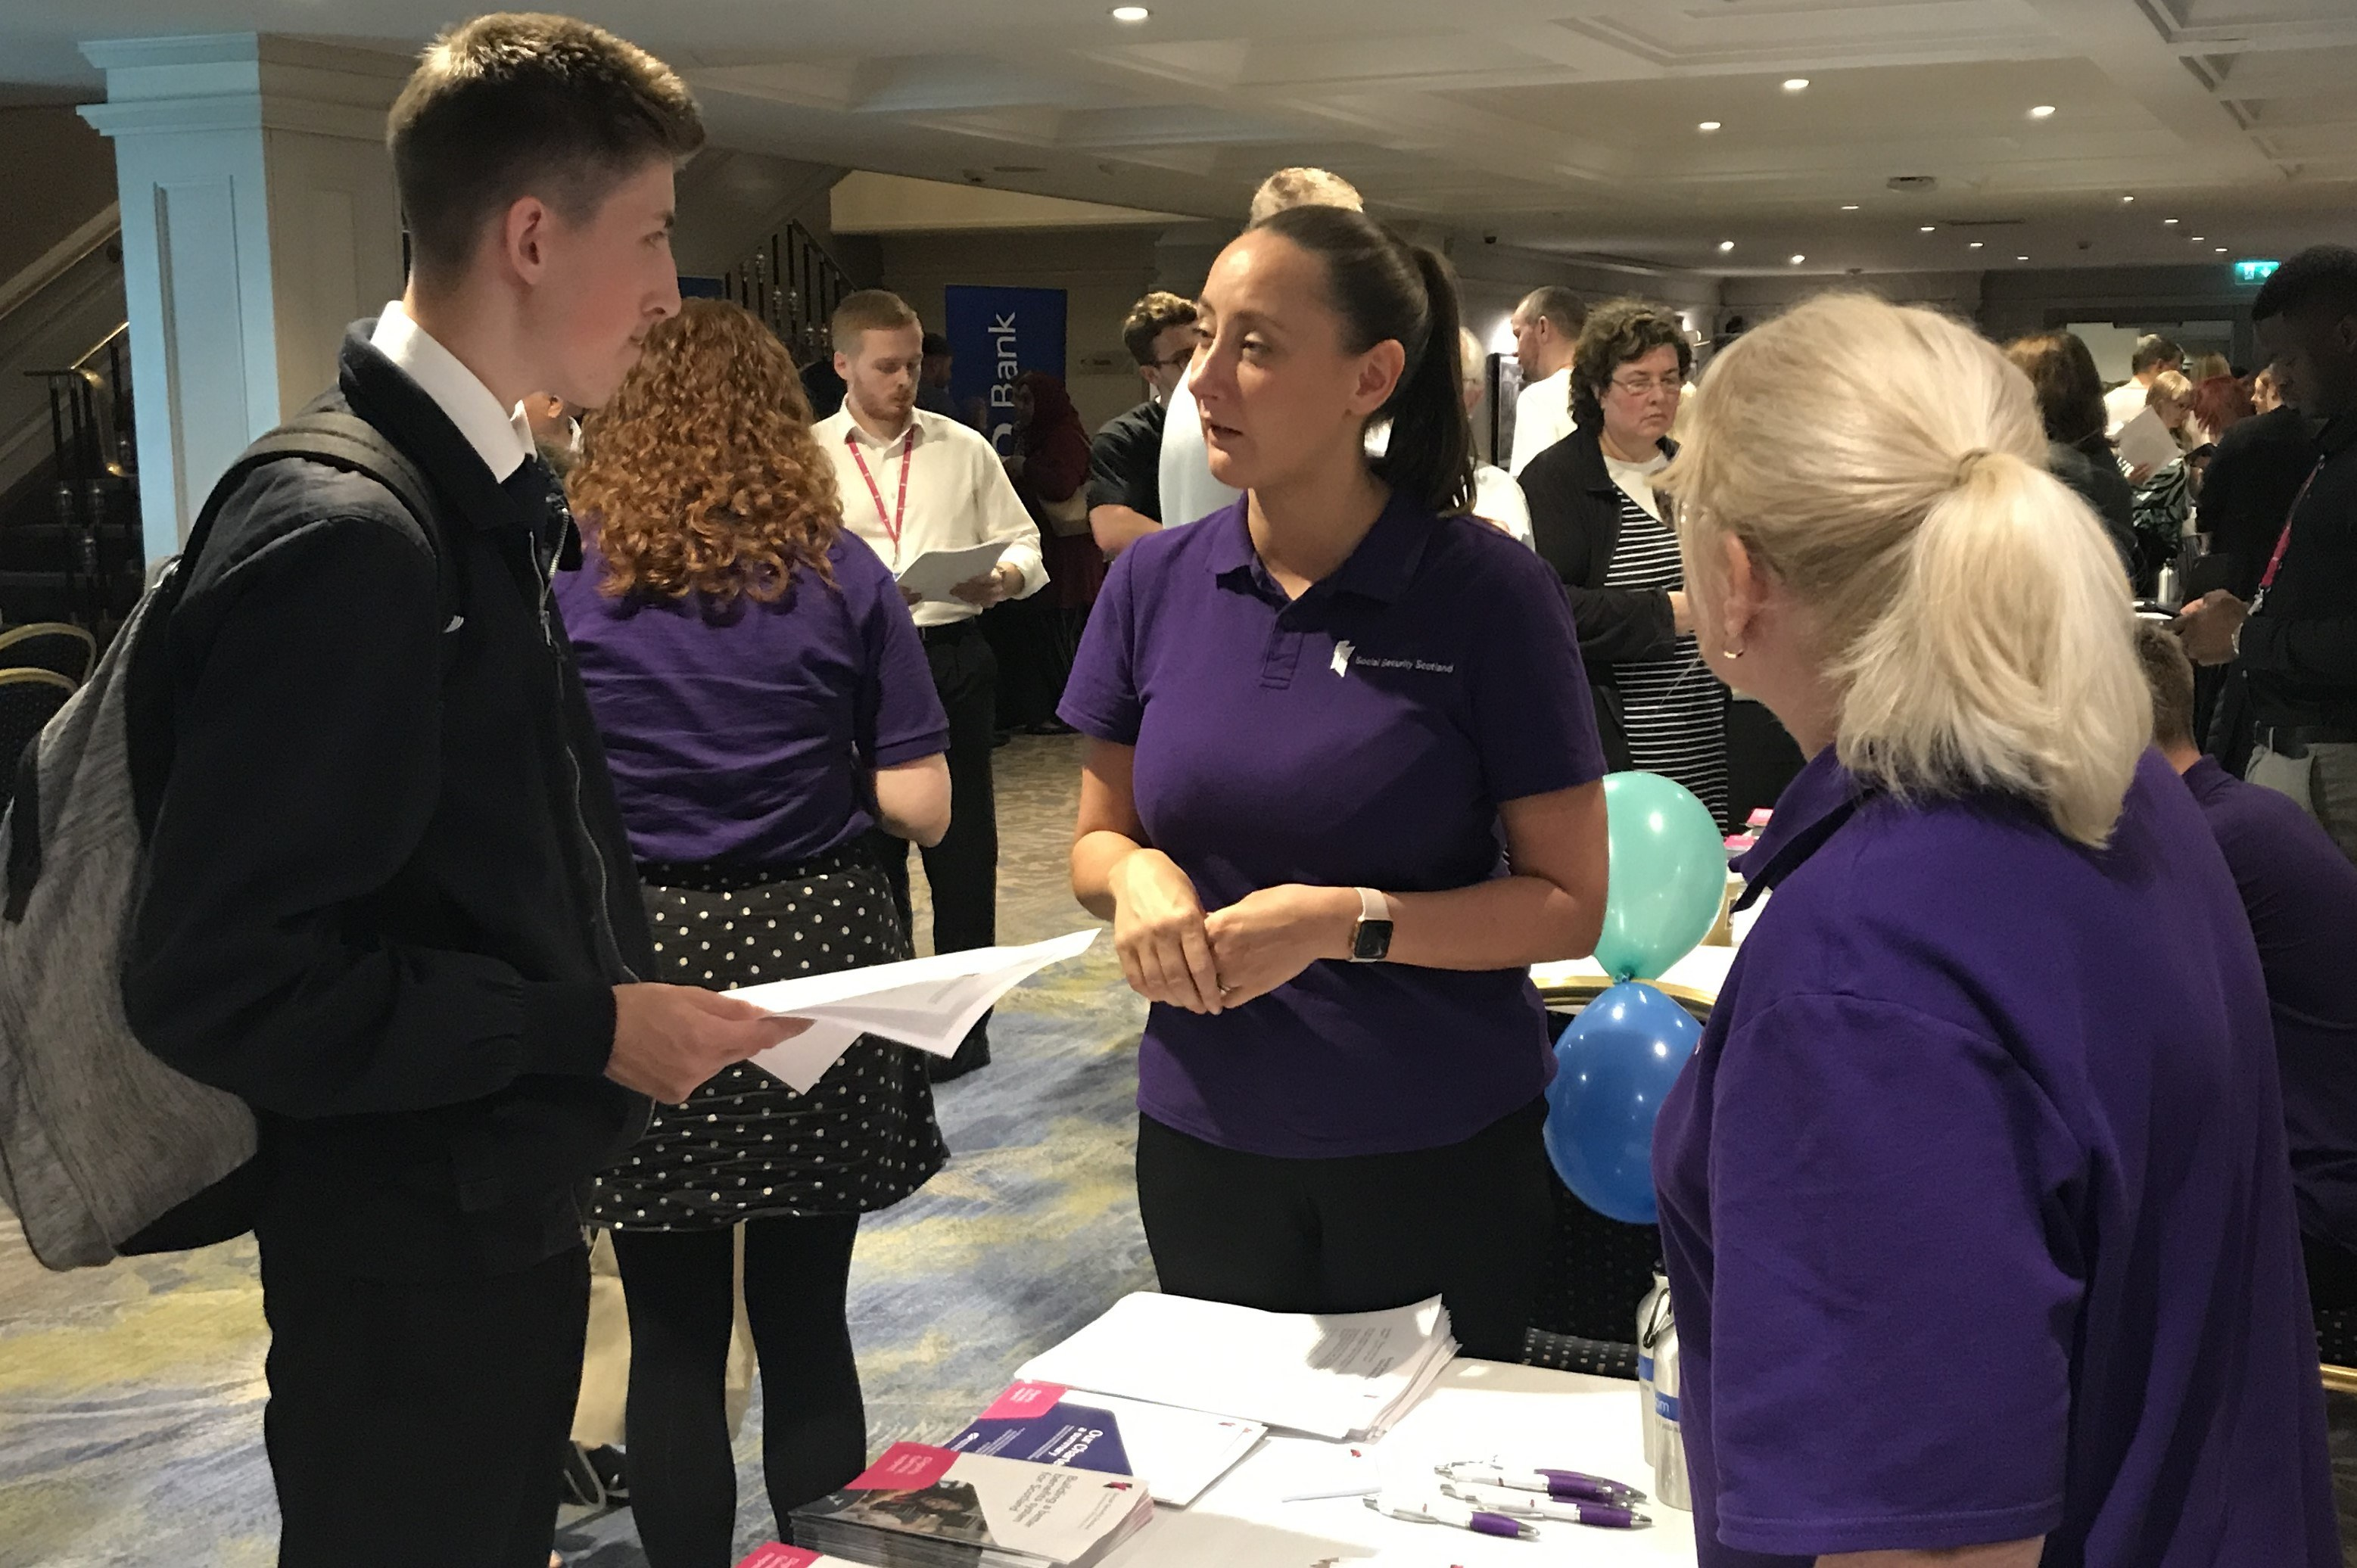 Image shows someone visiting a Social Security Scotland stall at a jobs fair